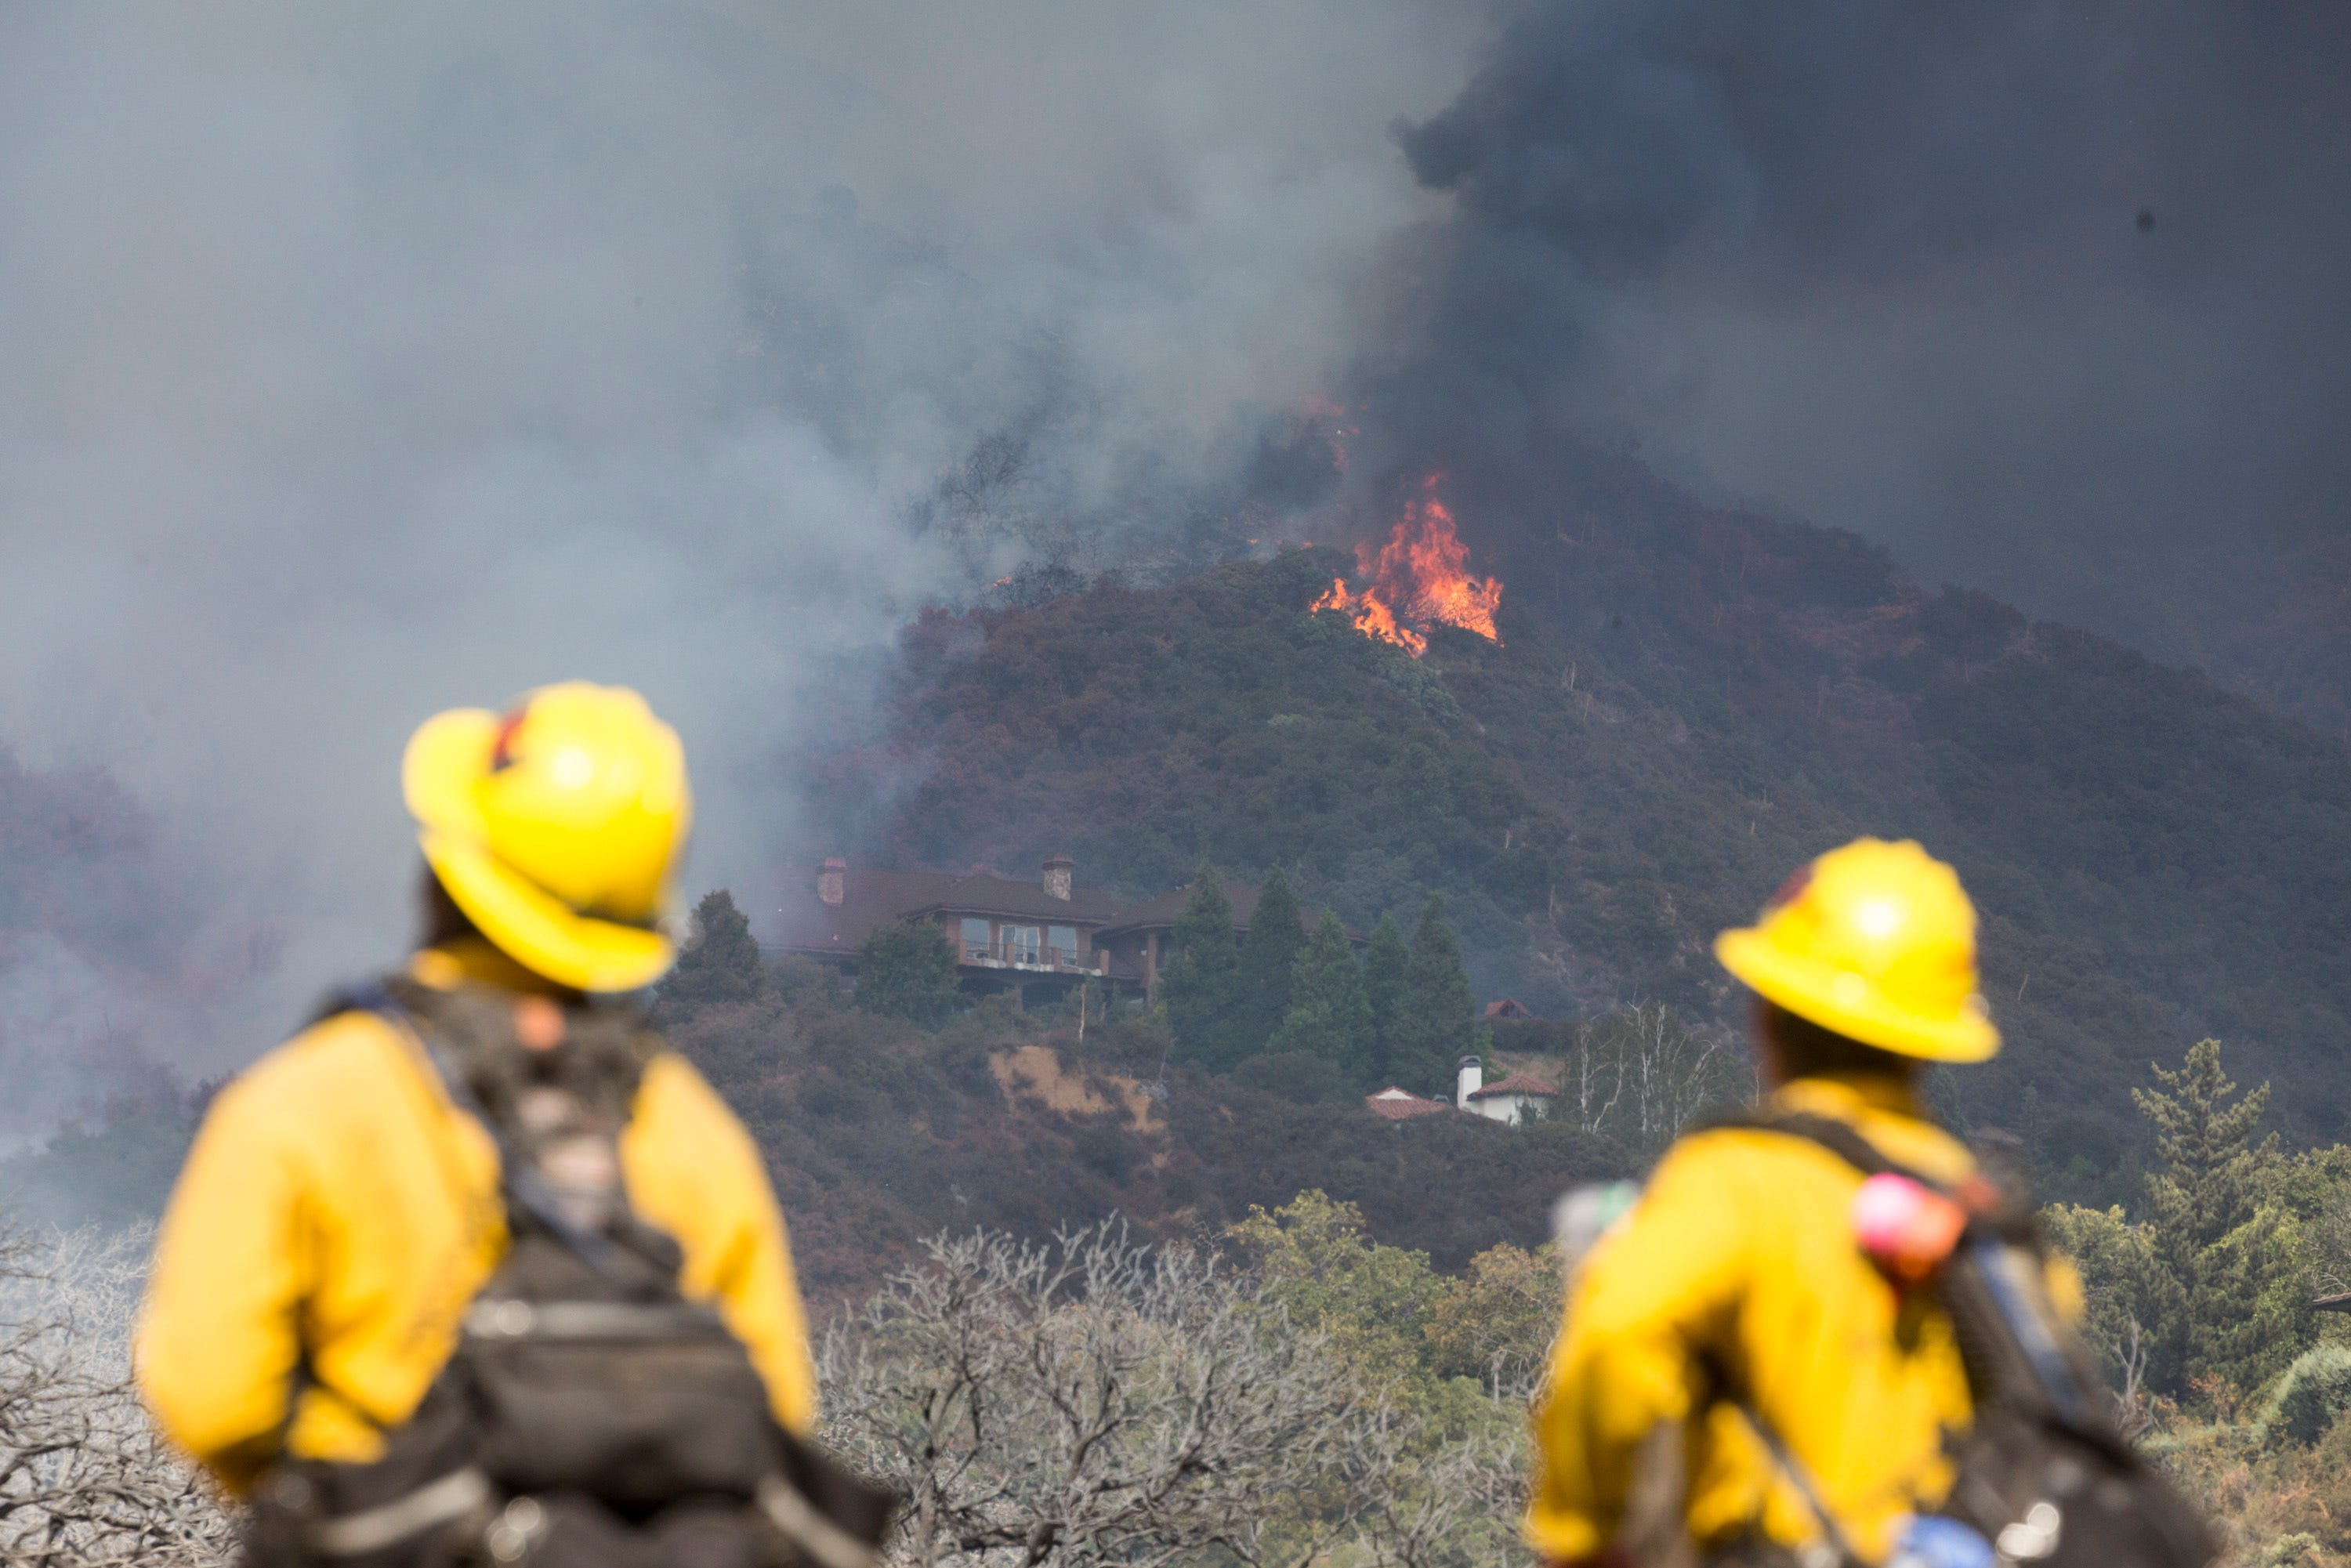 Fast-moving wildfires erupt amid heat wave in California